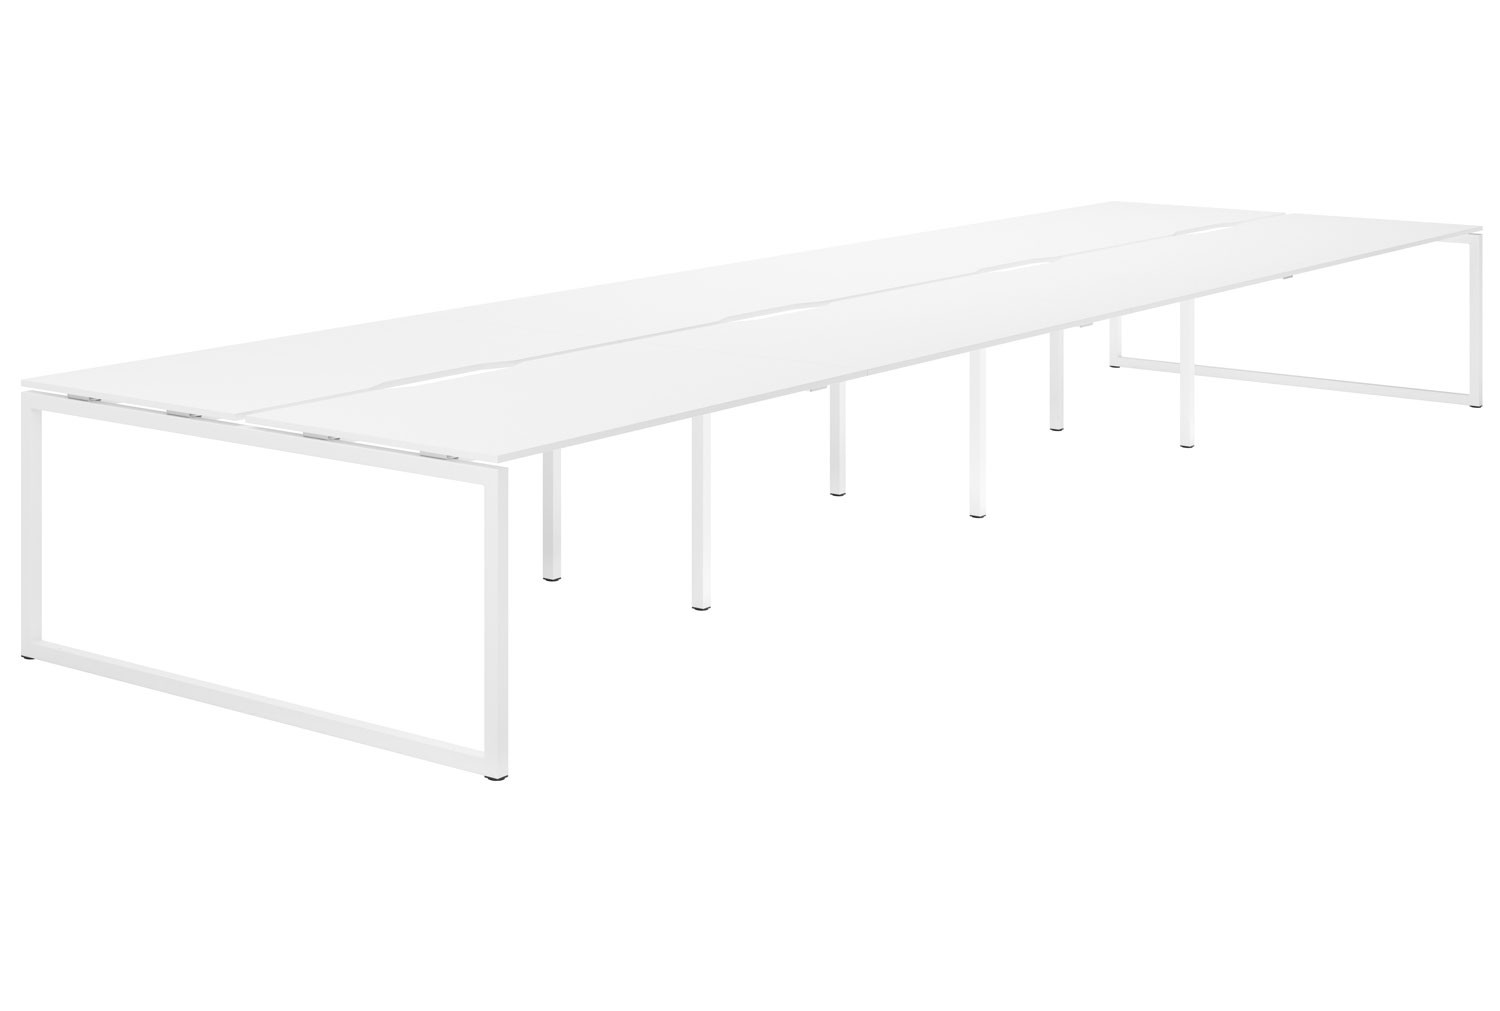 Campos Hooped Leg 8 Person Back To Back Bench Desk (White)